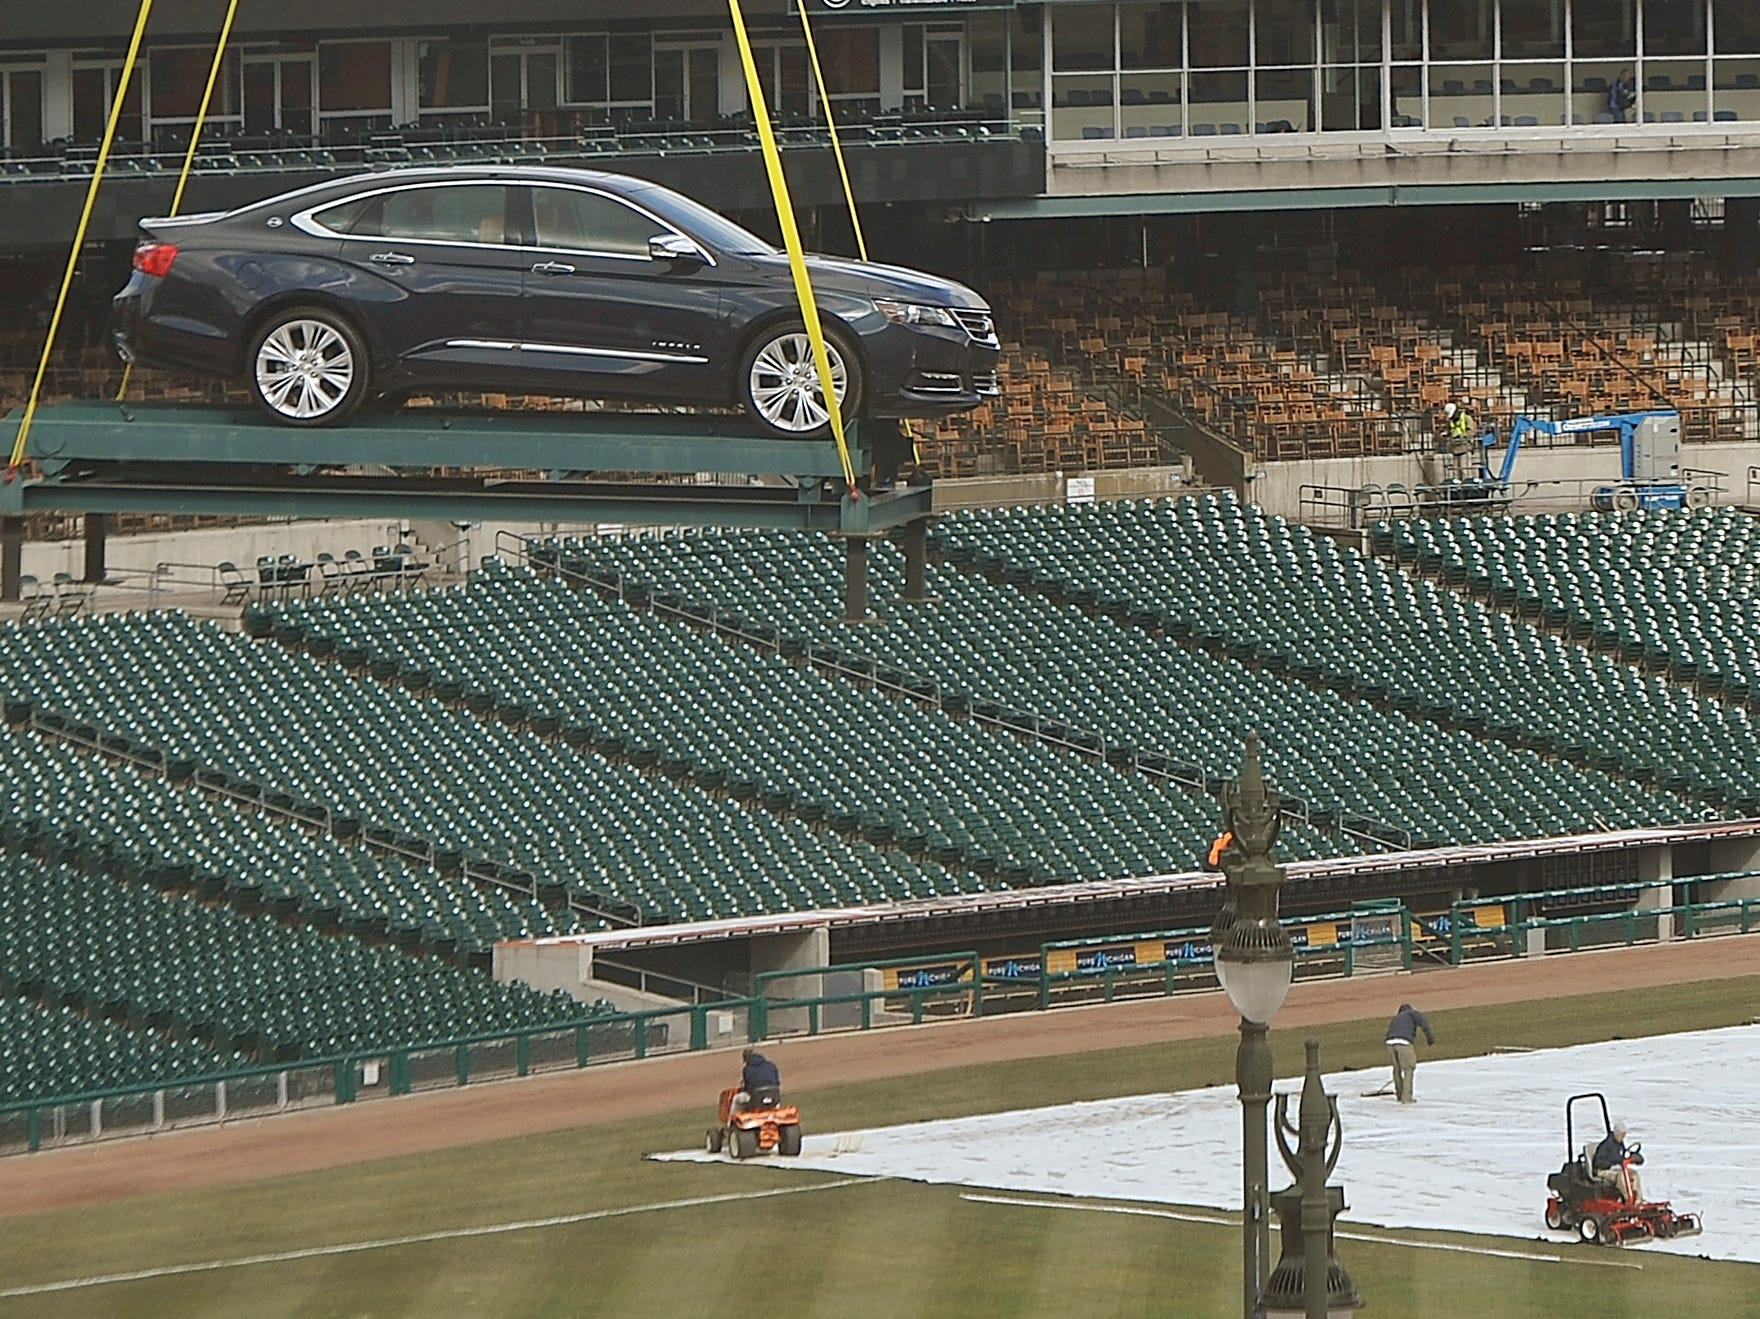 A 2014 Impala is lifted to the top of the Chevrolet fountain at Comerica Park in Detroit on April 1, 2013.